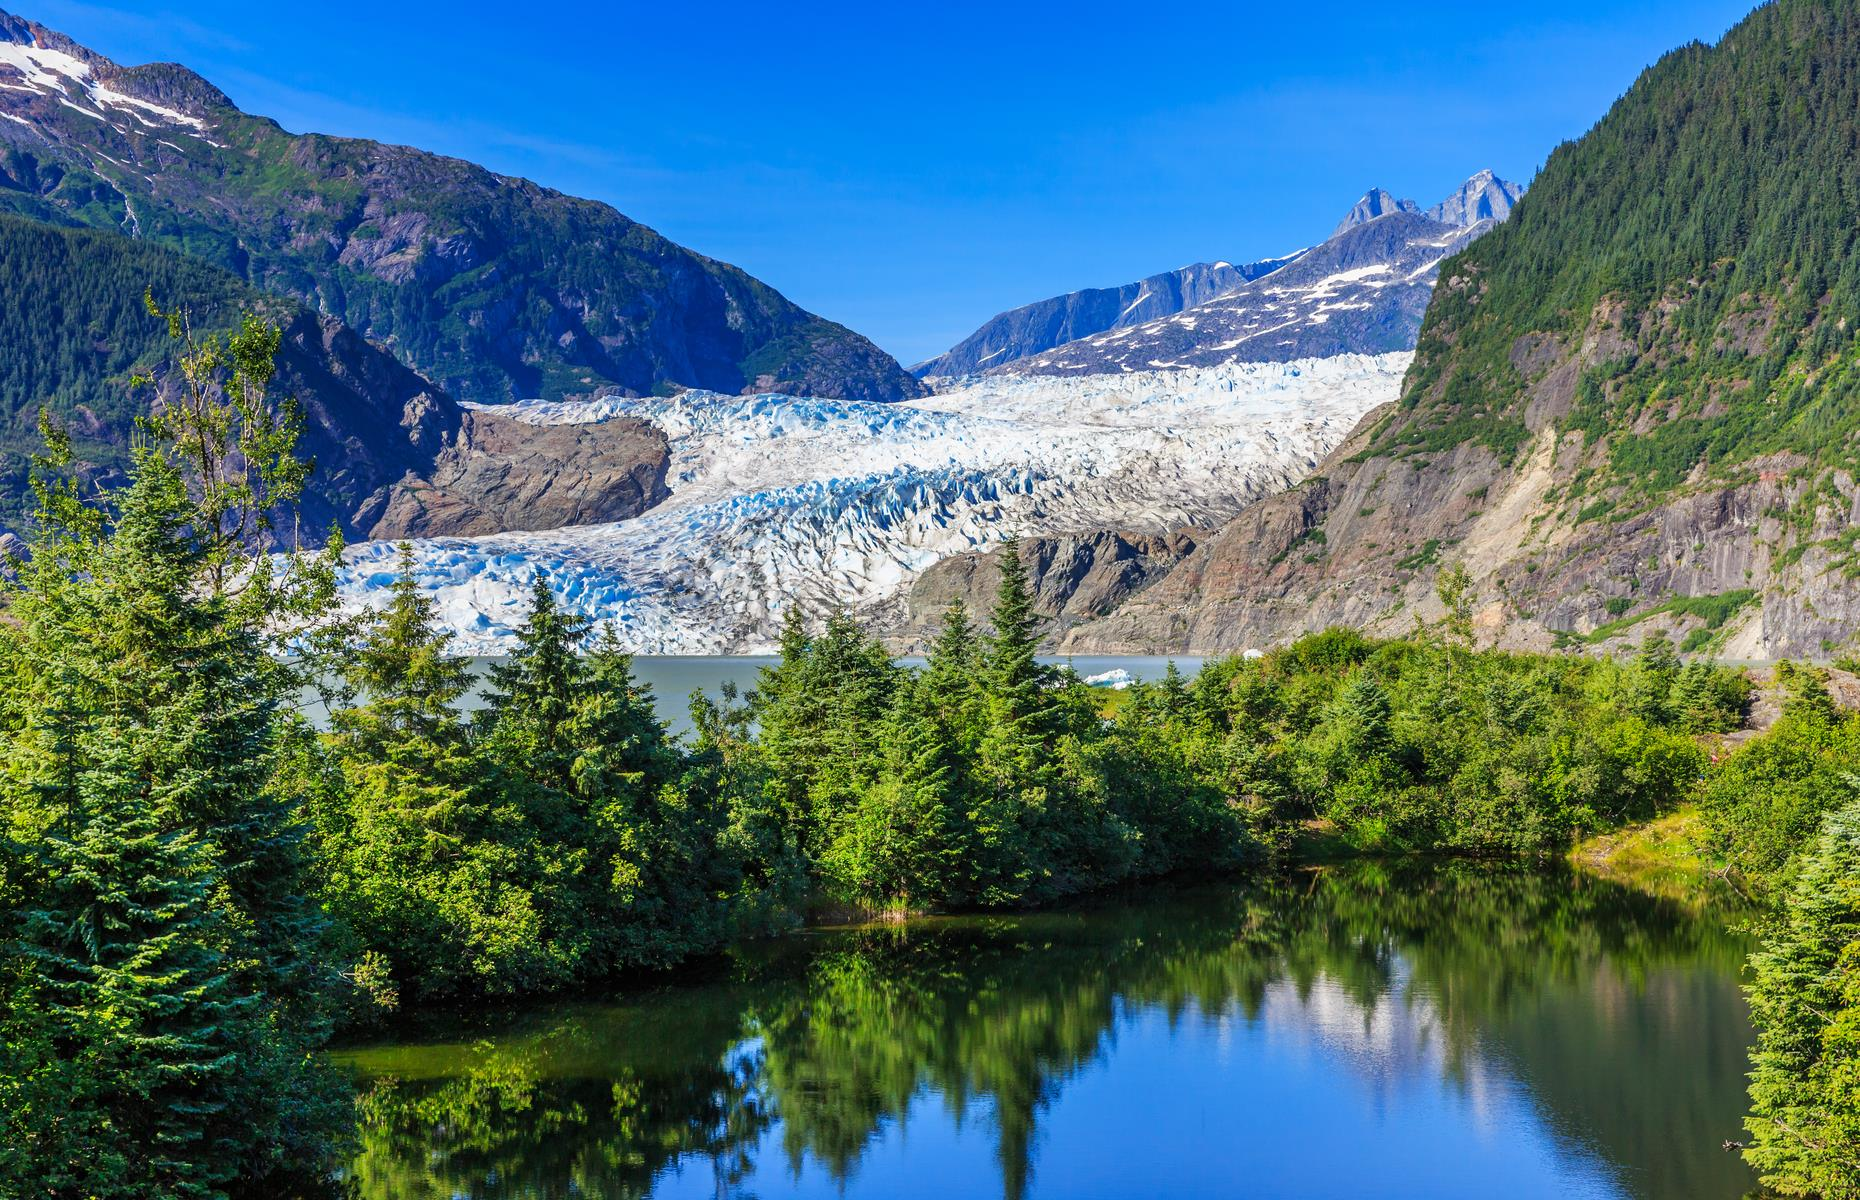 Slide 12 of 35: One of Alaska's most accessible glaciers, Mendenhall Glacier is located a mere 13 miles (21km) from the town of Juneau and can be reached by car, on foot, by air, or by boat. Part of the 1,500 square mile (3,900sq km) Juneau Icefield, the glacier has been retreating since the Little Ice Age between the 16th and 19th centuries. The glacier is accessible all year but May to October, when the weather is warmest, is the most popular time to visit (when COVID-19 restrictions allow).